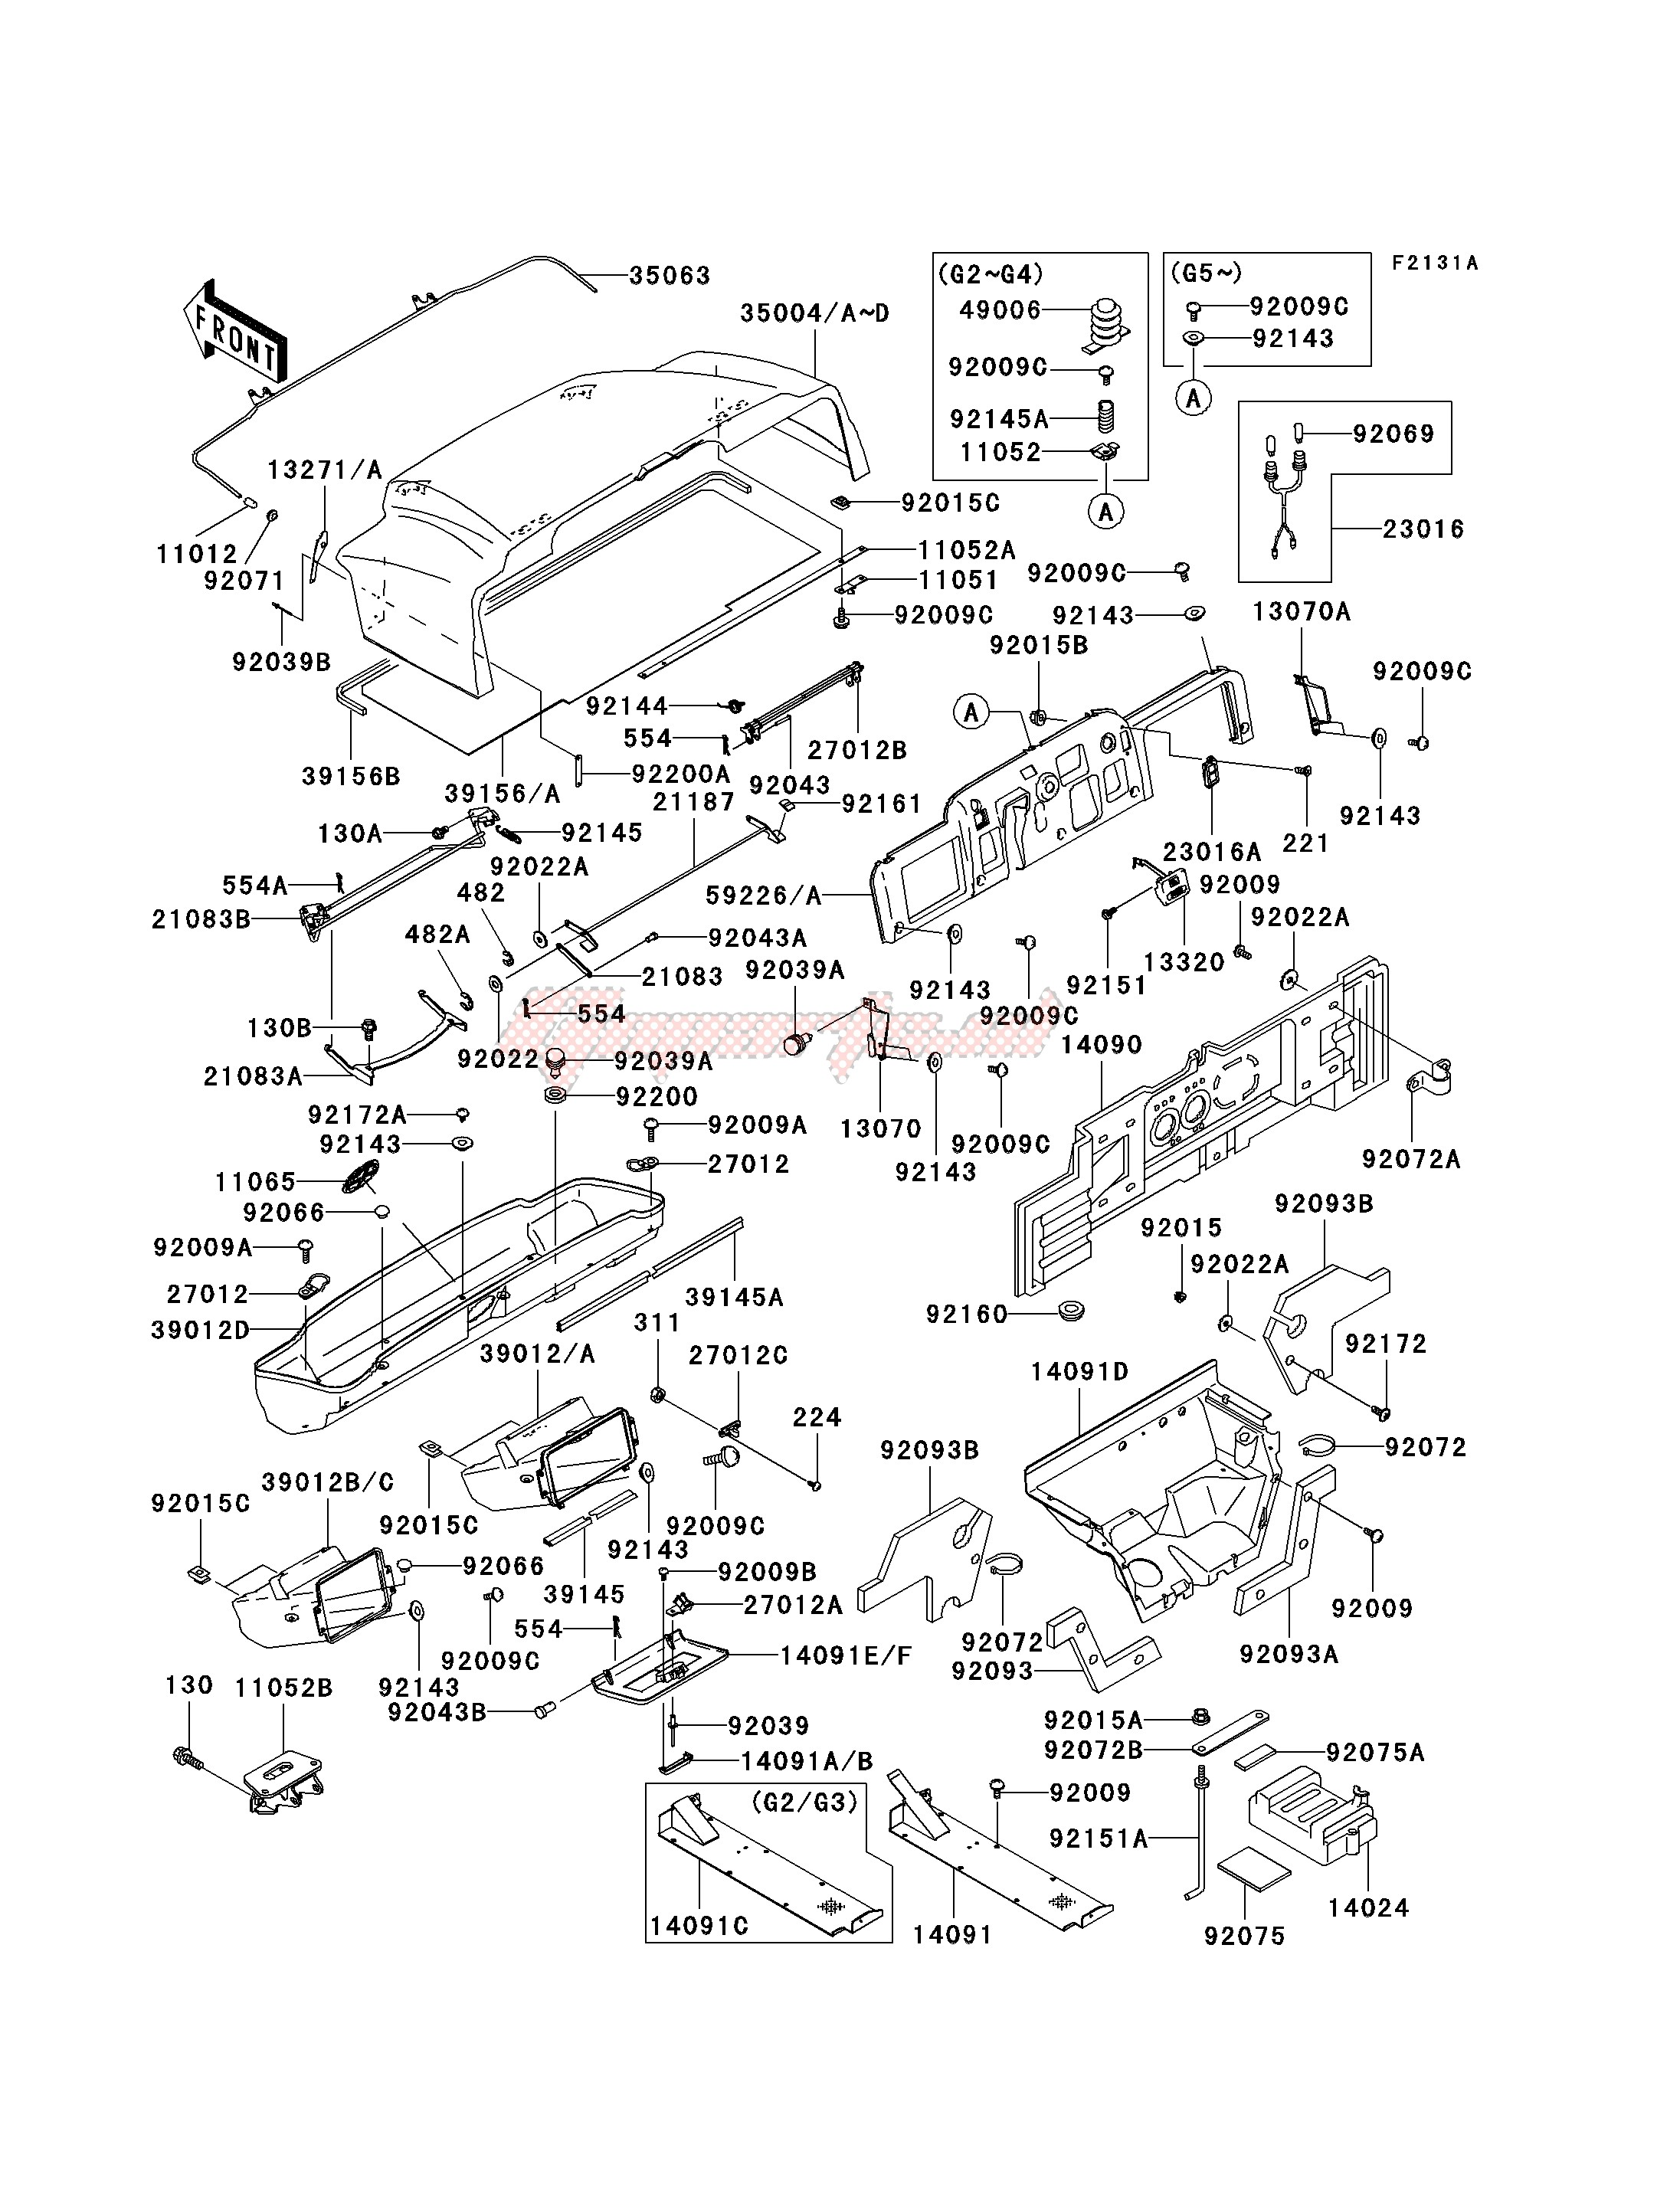 Frame-FRAME FITTINGS -- KAF620-G2 - G5- -